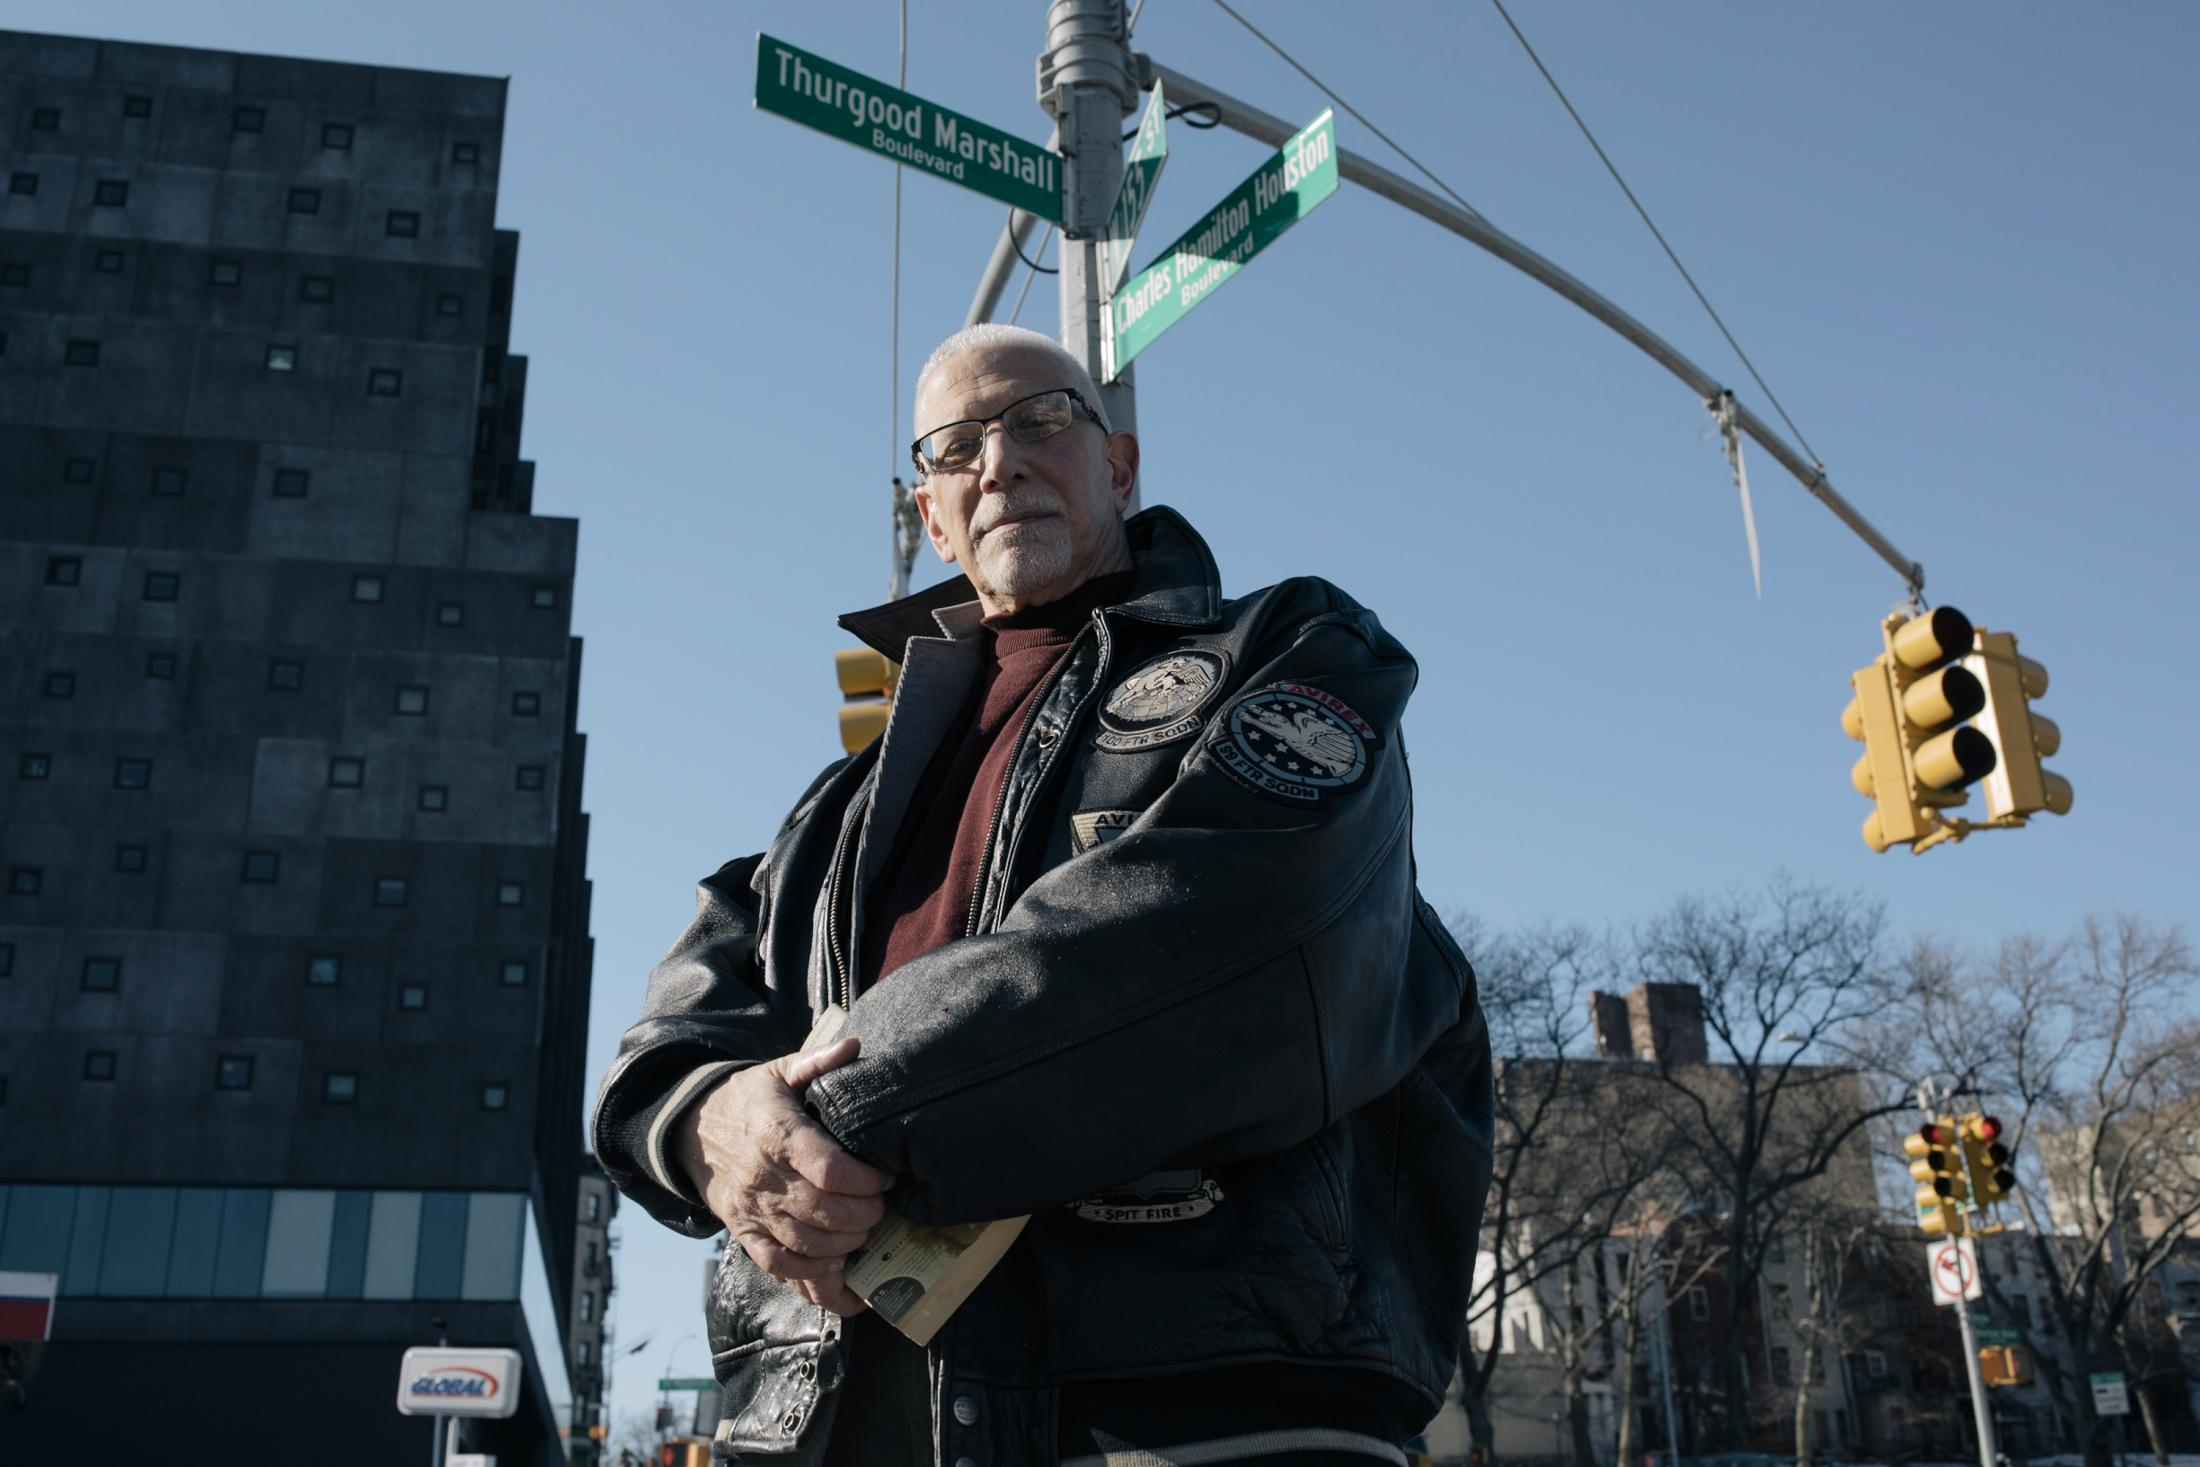 New York City, New York — February 21, 2021: As the sun rises over Harlem, Jacob Morris, director of the Harlem Historical Society, stands on the corner of Edgecombe Avenue and W 155th Street, which was renamed Thurgood Marshall Boulevard and Charles Hamilton Houston Boulevard and enjoys a crisp February afternoon in the historical Harlem neighborhood of Sugar Hill. CREDIT: José A. Alvarado Jr. for The New York Times